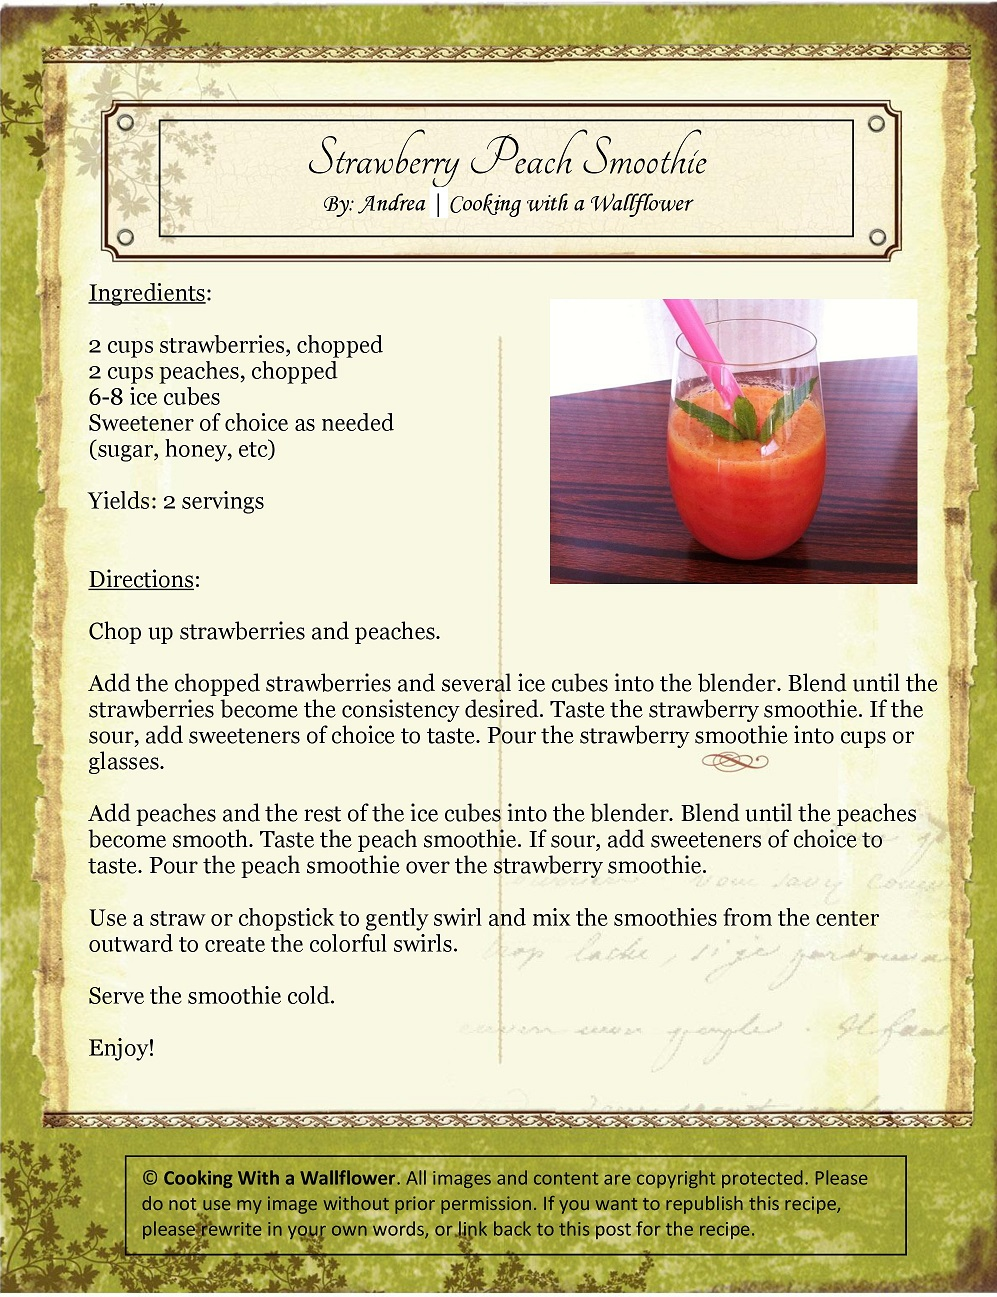 Strawberry Peach Smoothie Recipe Card